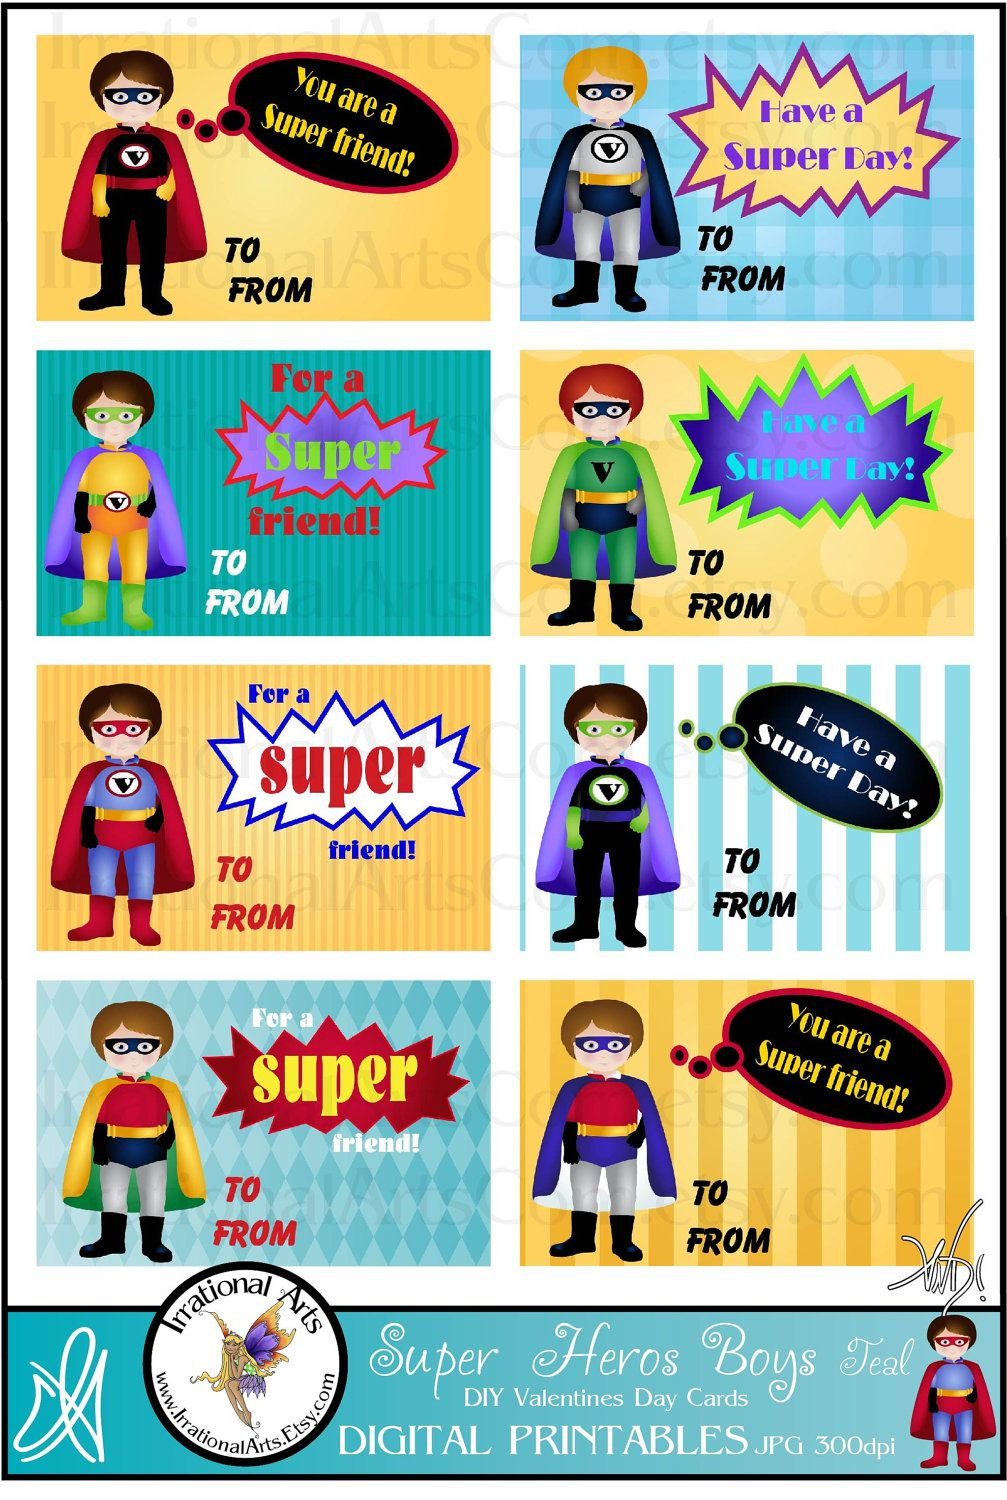 Valentines Day Cards for kids exchange SUPER HERO BOYS Teal – Boy Valentines Day Cards